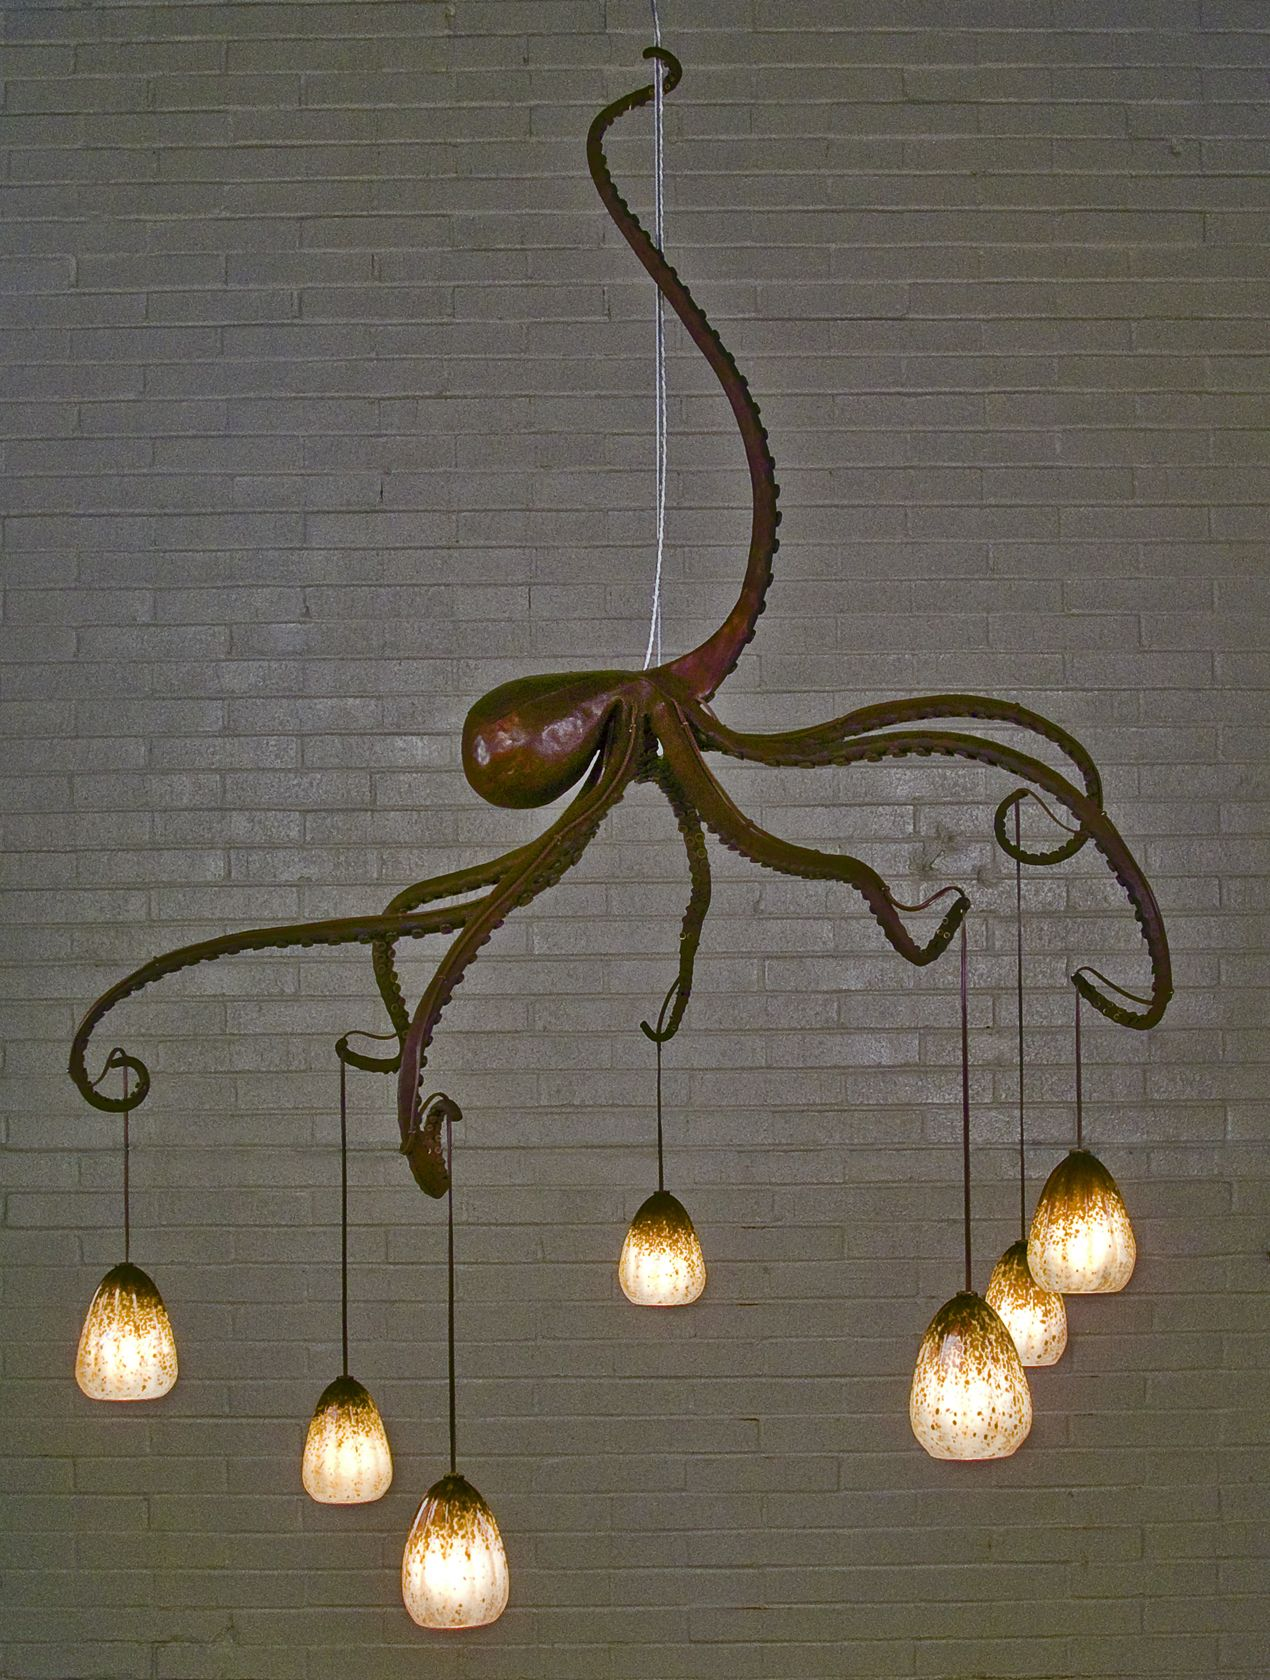 Octopus chandelier made for michael chiarellos restaurant bottega apolonisaphrodisia octopus chandelier by daniel hopper design this octopus lighting fixture brings a fun and witty feel to a room arubaitofo Images